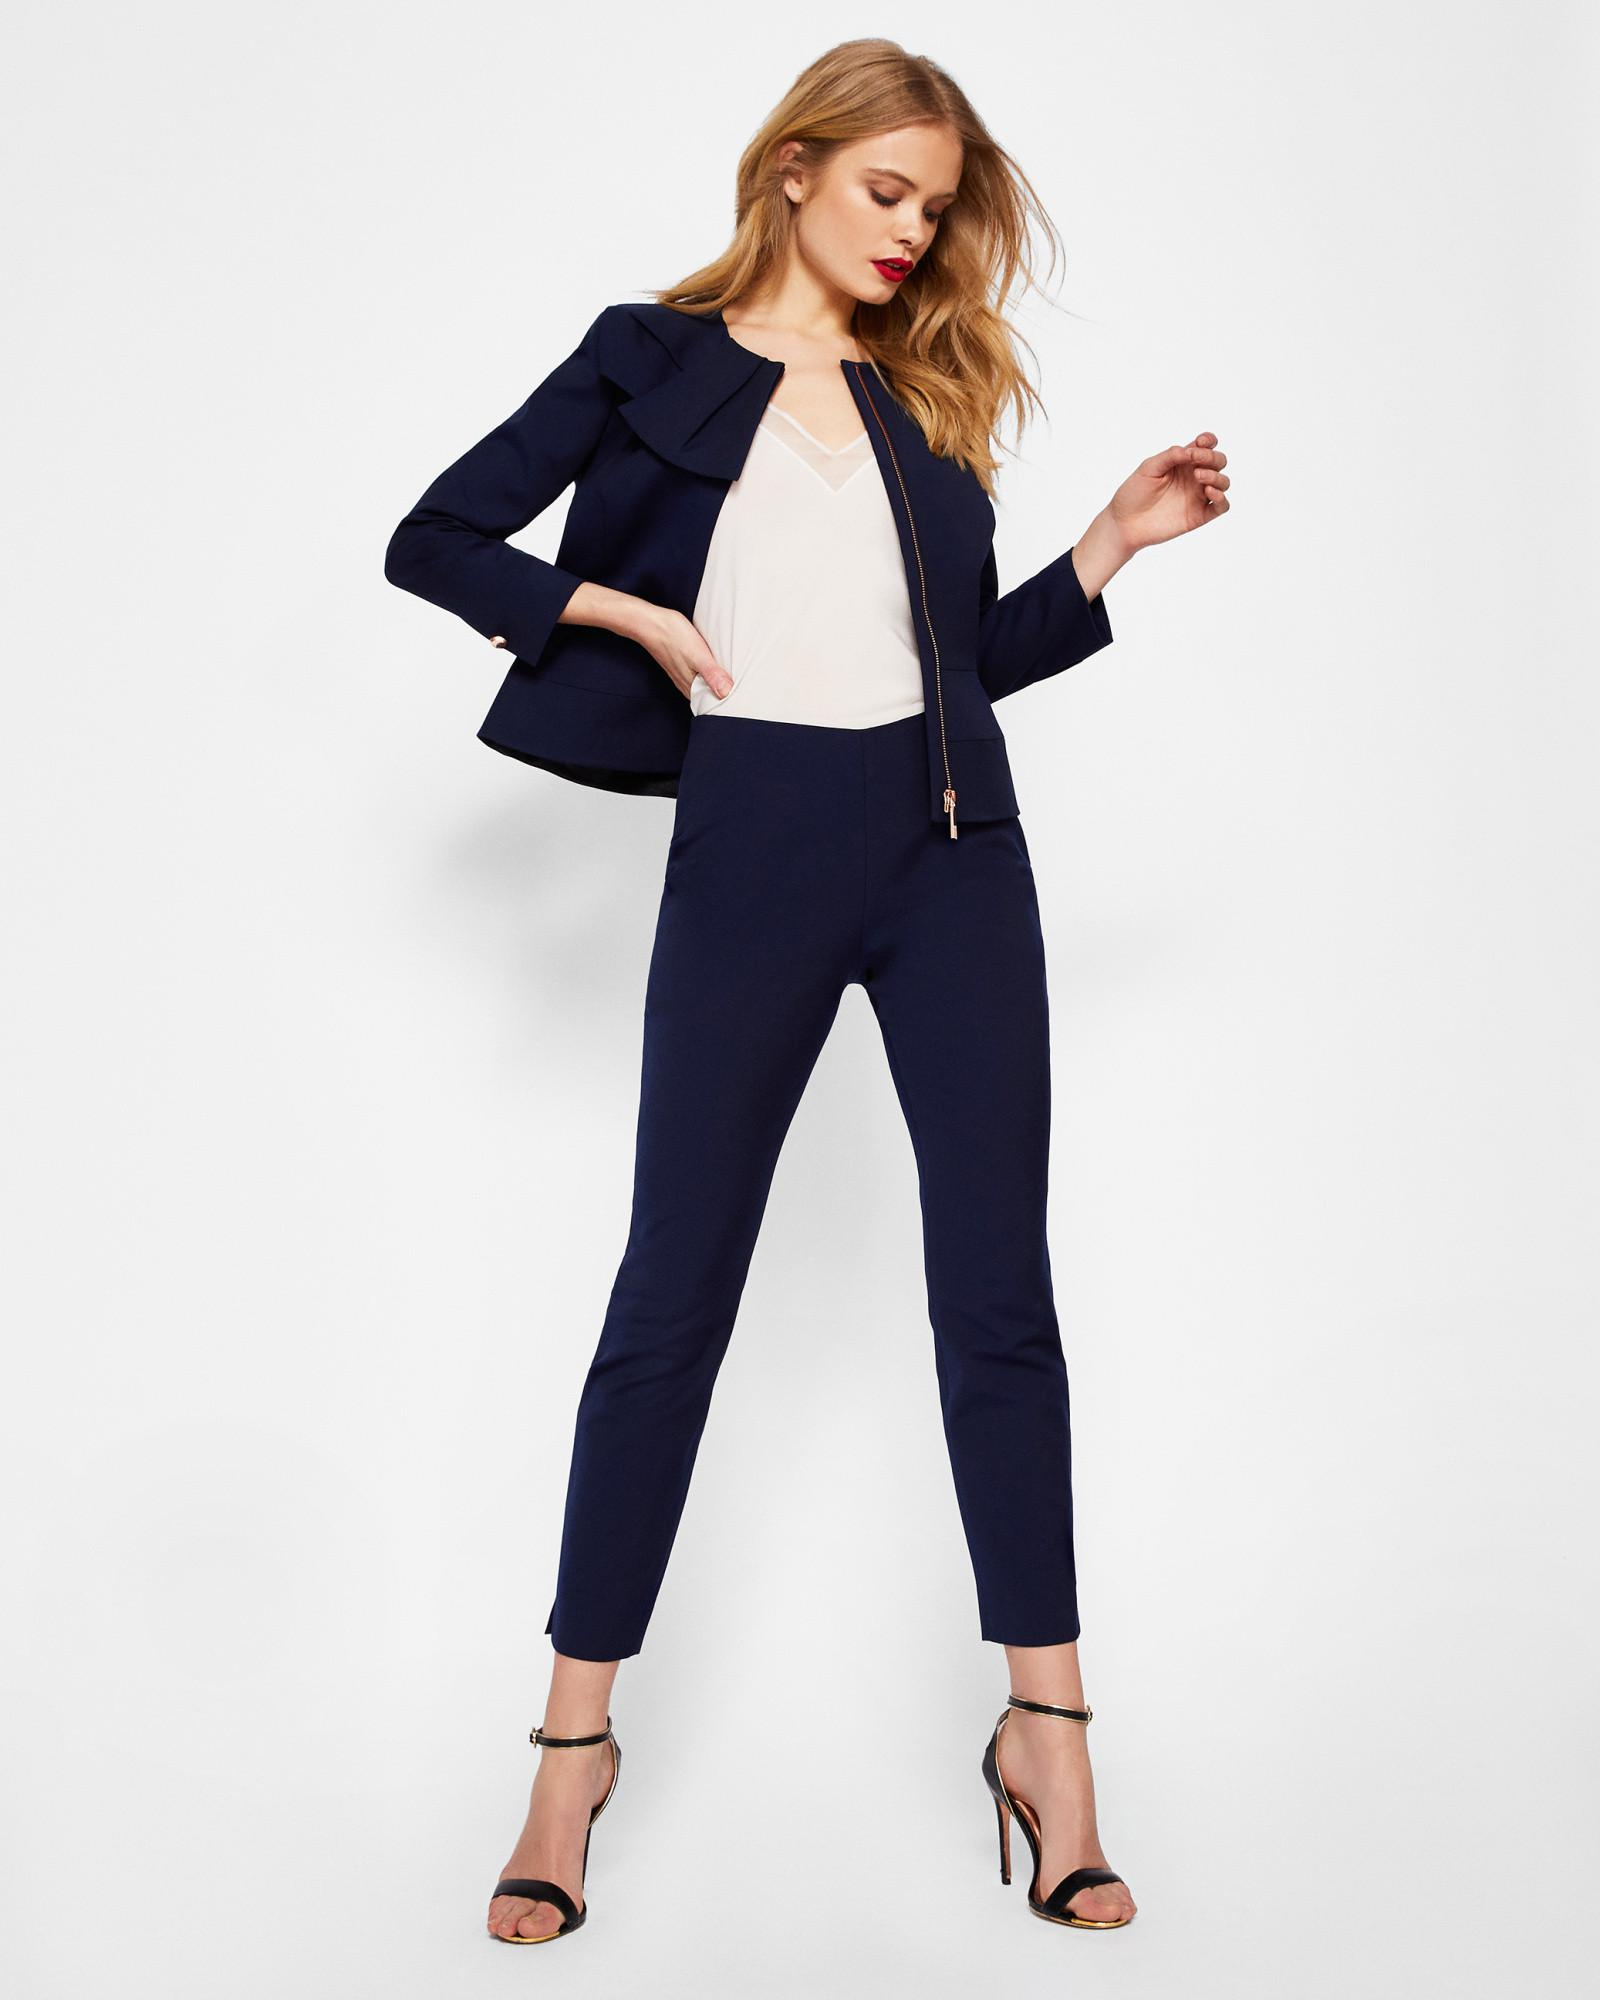 5951691b6 Lyst - Ted Baker Bow Neck Peplum Jacket in Blue